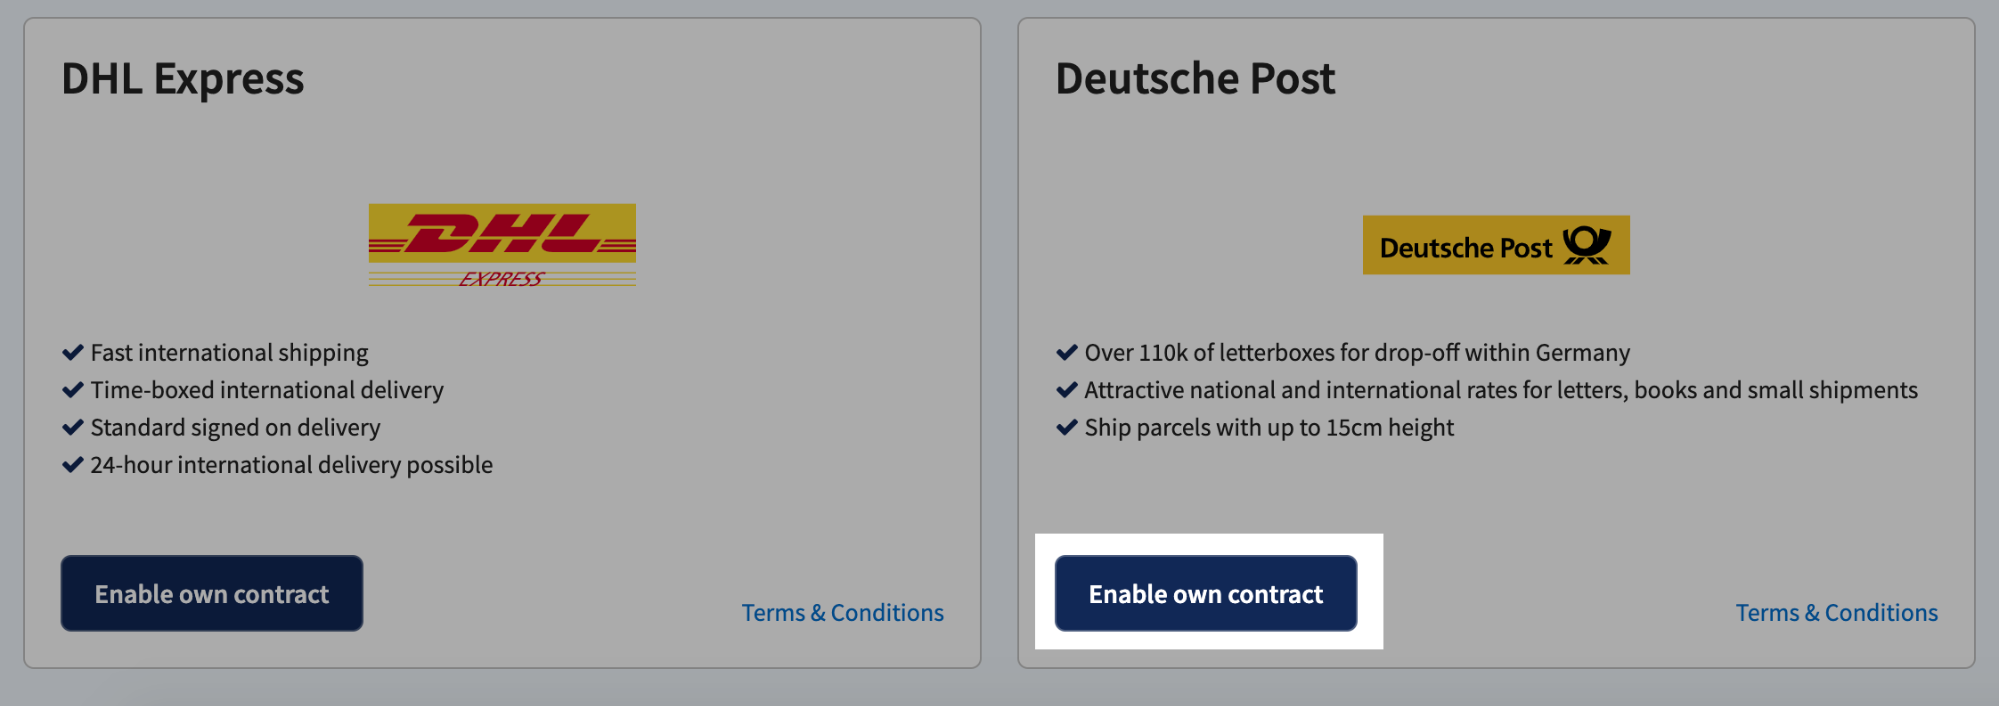 Deutsche_Post__2_.png